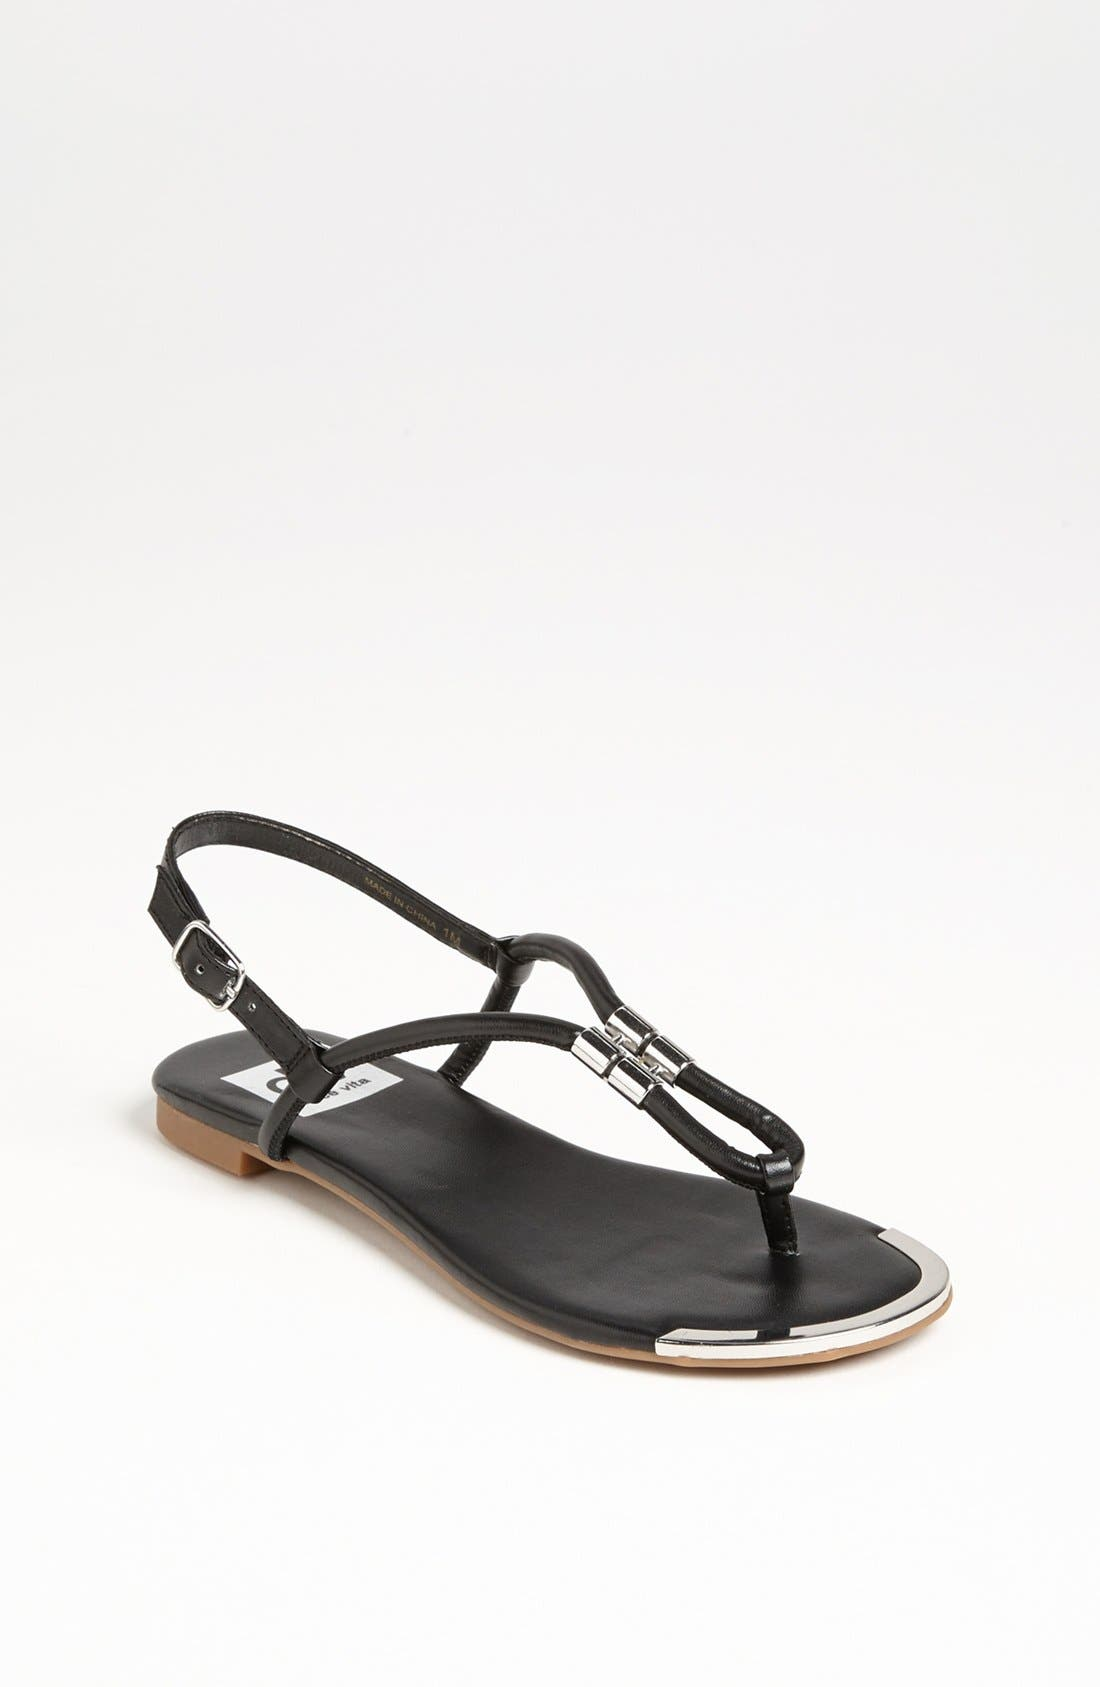 Alternate Image 1 Selected - DV by Dolce Vita 'Torin' Sandal (Toddler, Little Kid & Big Kid)